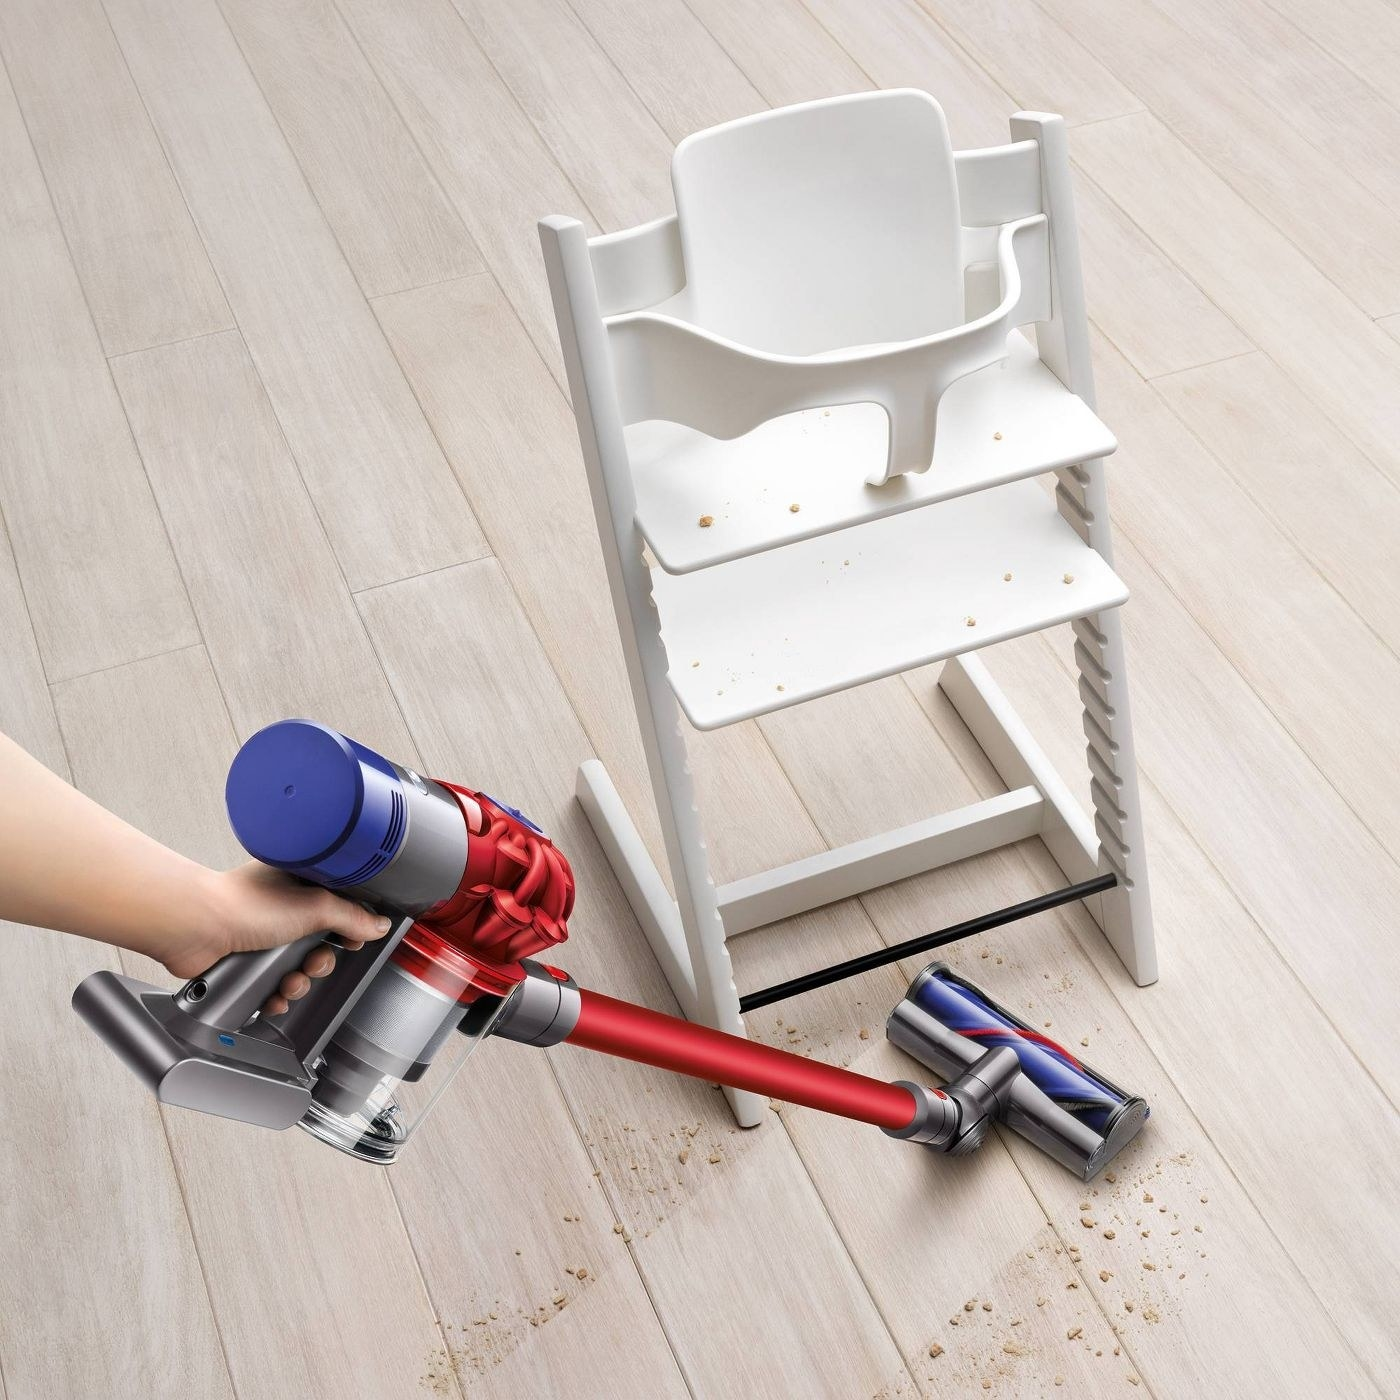 purple and red cordless Dyson stick vacuum cleaning a hardwood floor